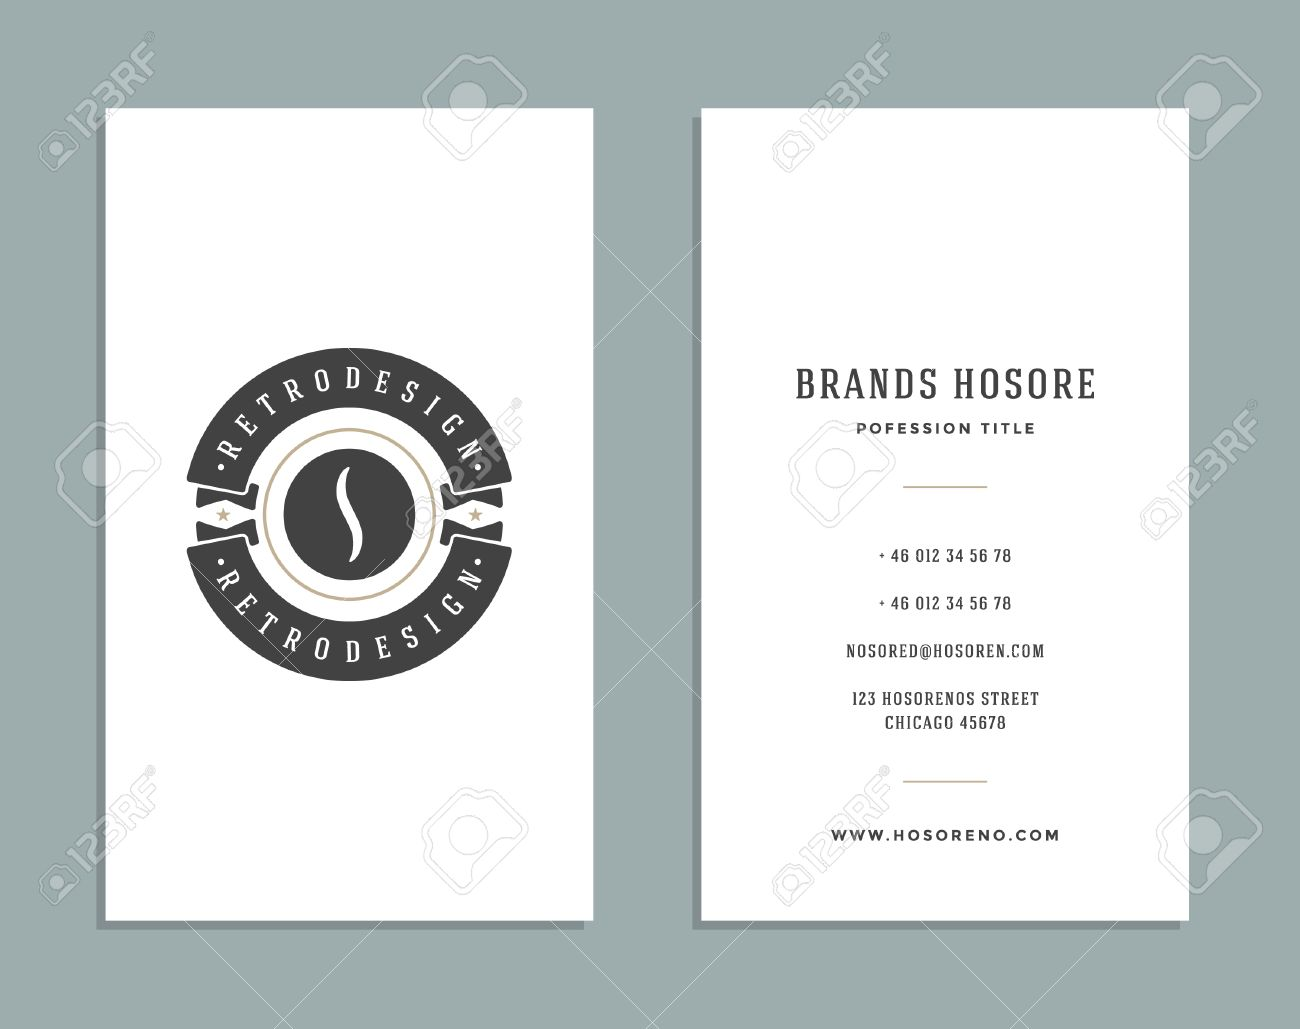 Business Card Design And Retro Style Template Coffee Shop Logo ...